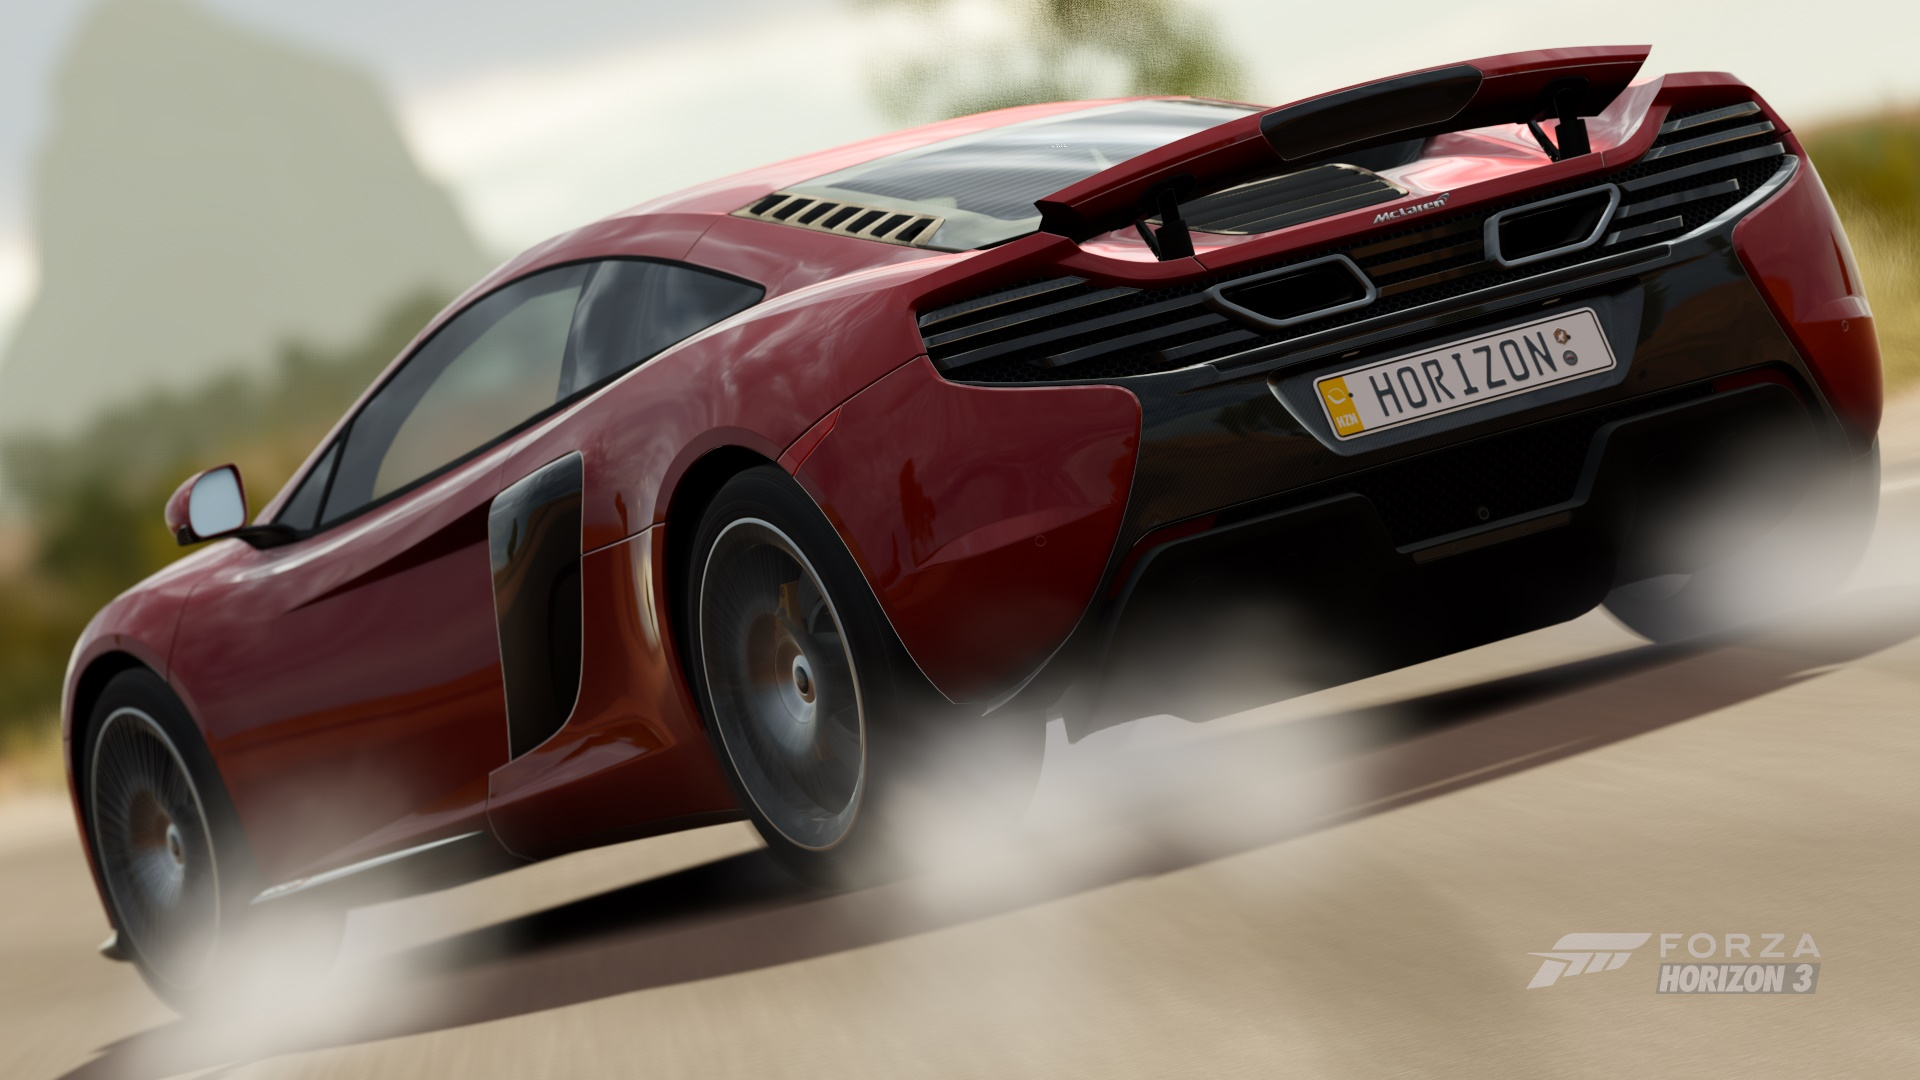 2015 McLaren 650S Coupe in Forza Horizon 3 (Photo: Forza)